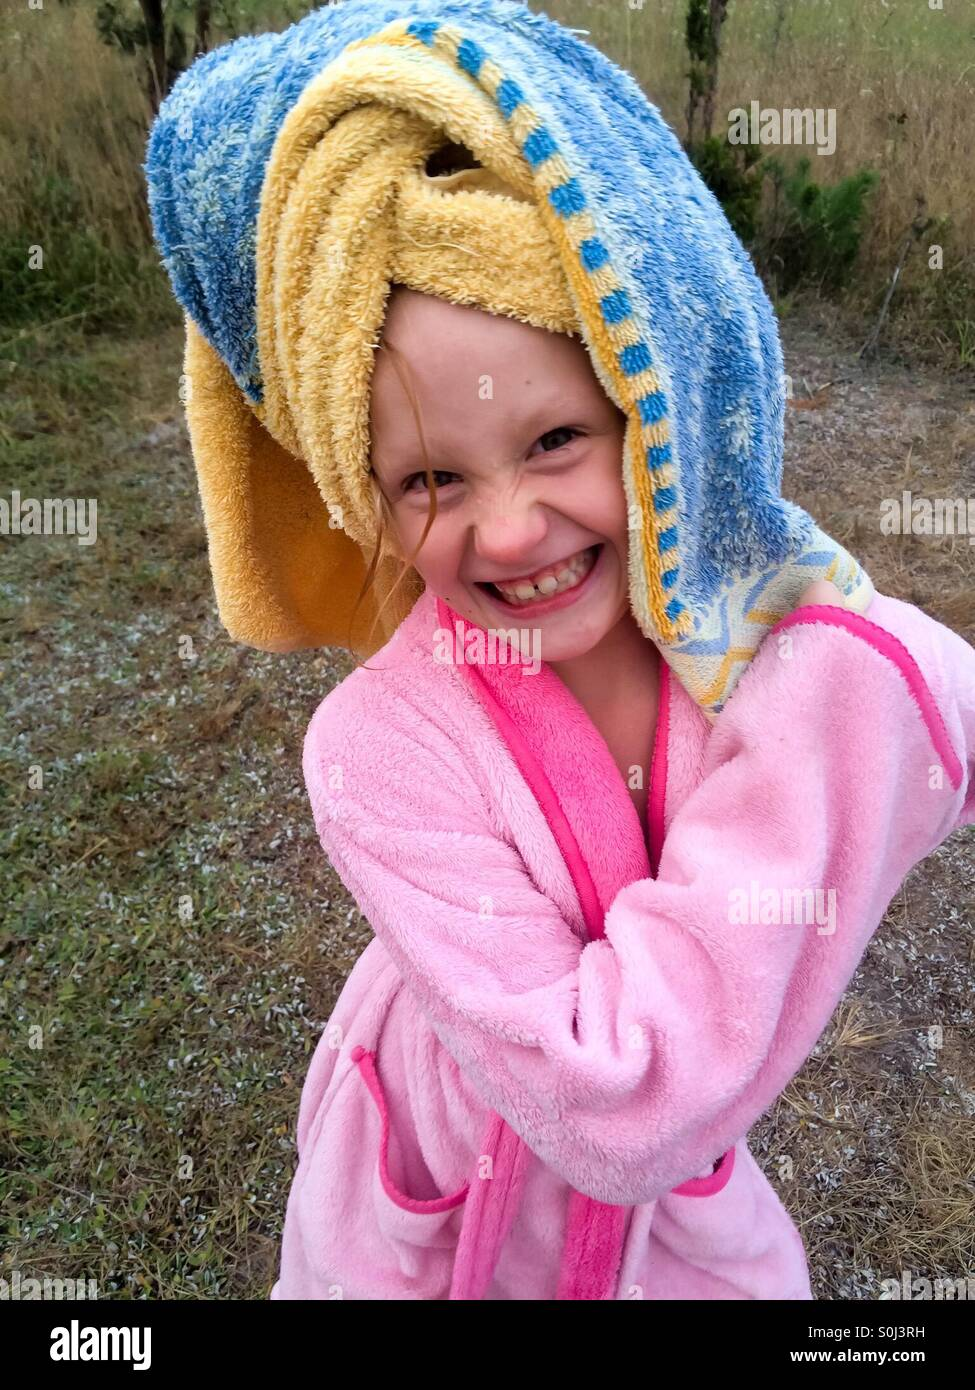 Smiling girl with towel over her wet hair and pink robe, standing outside - Stock Image